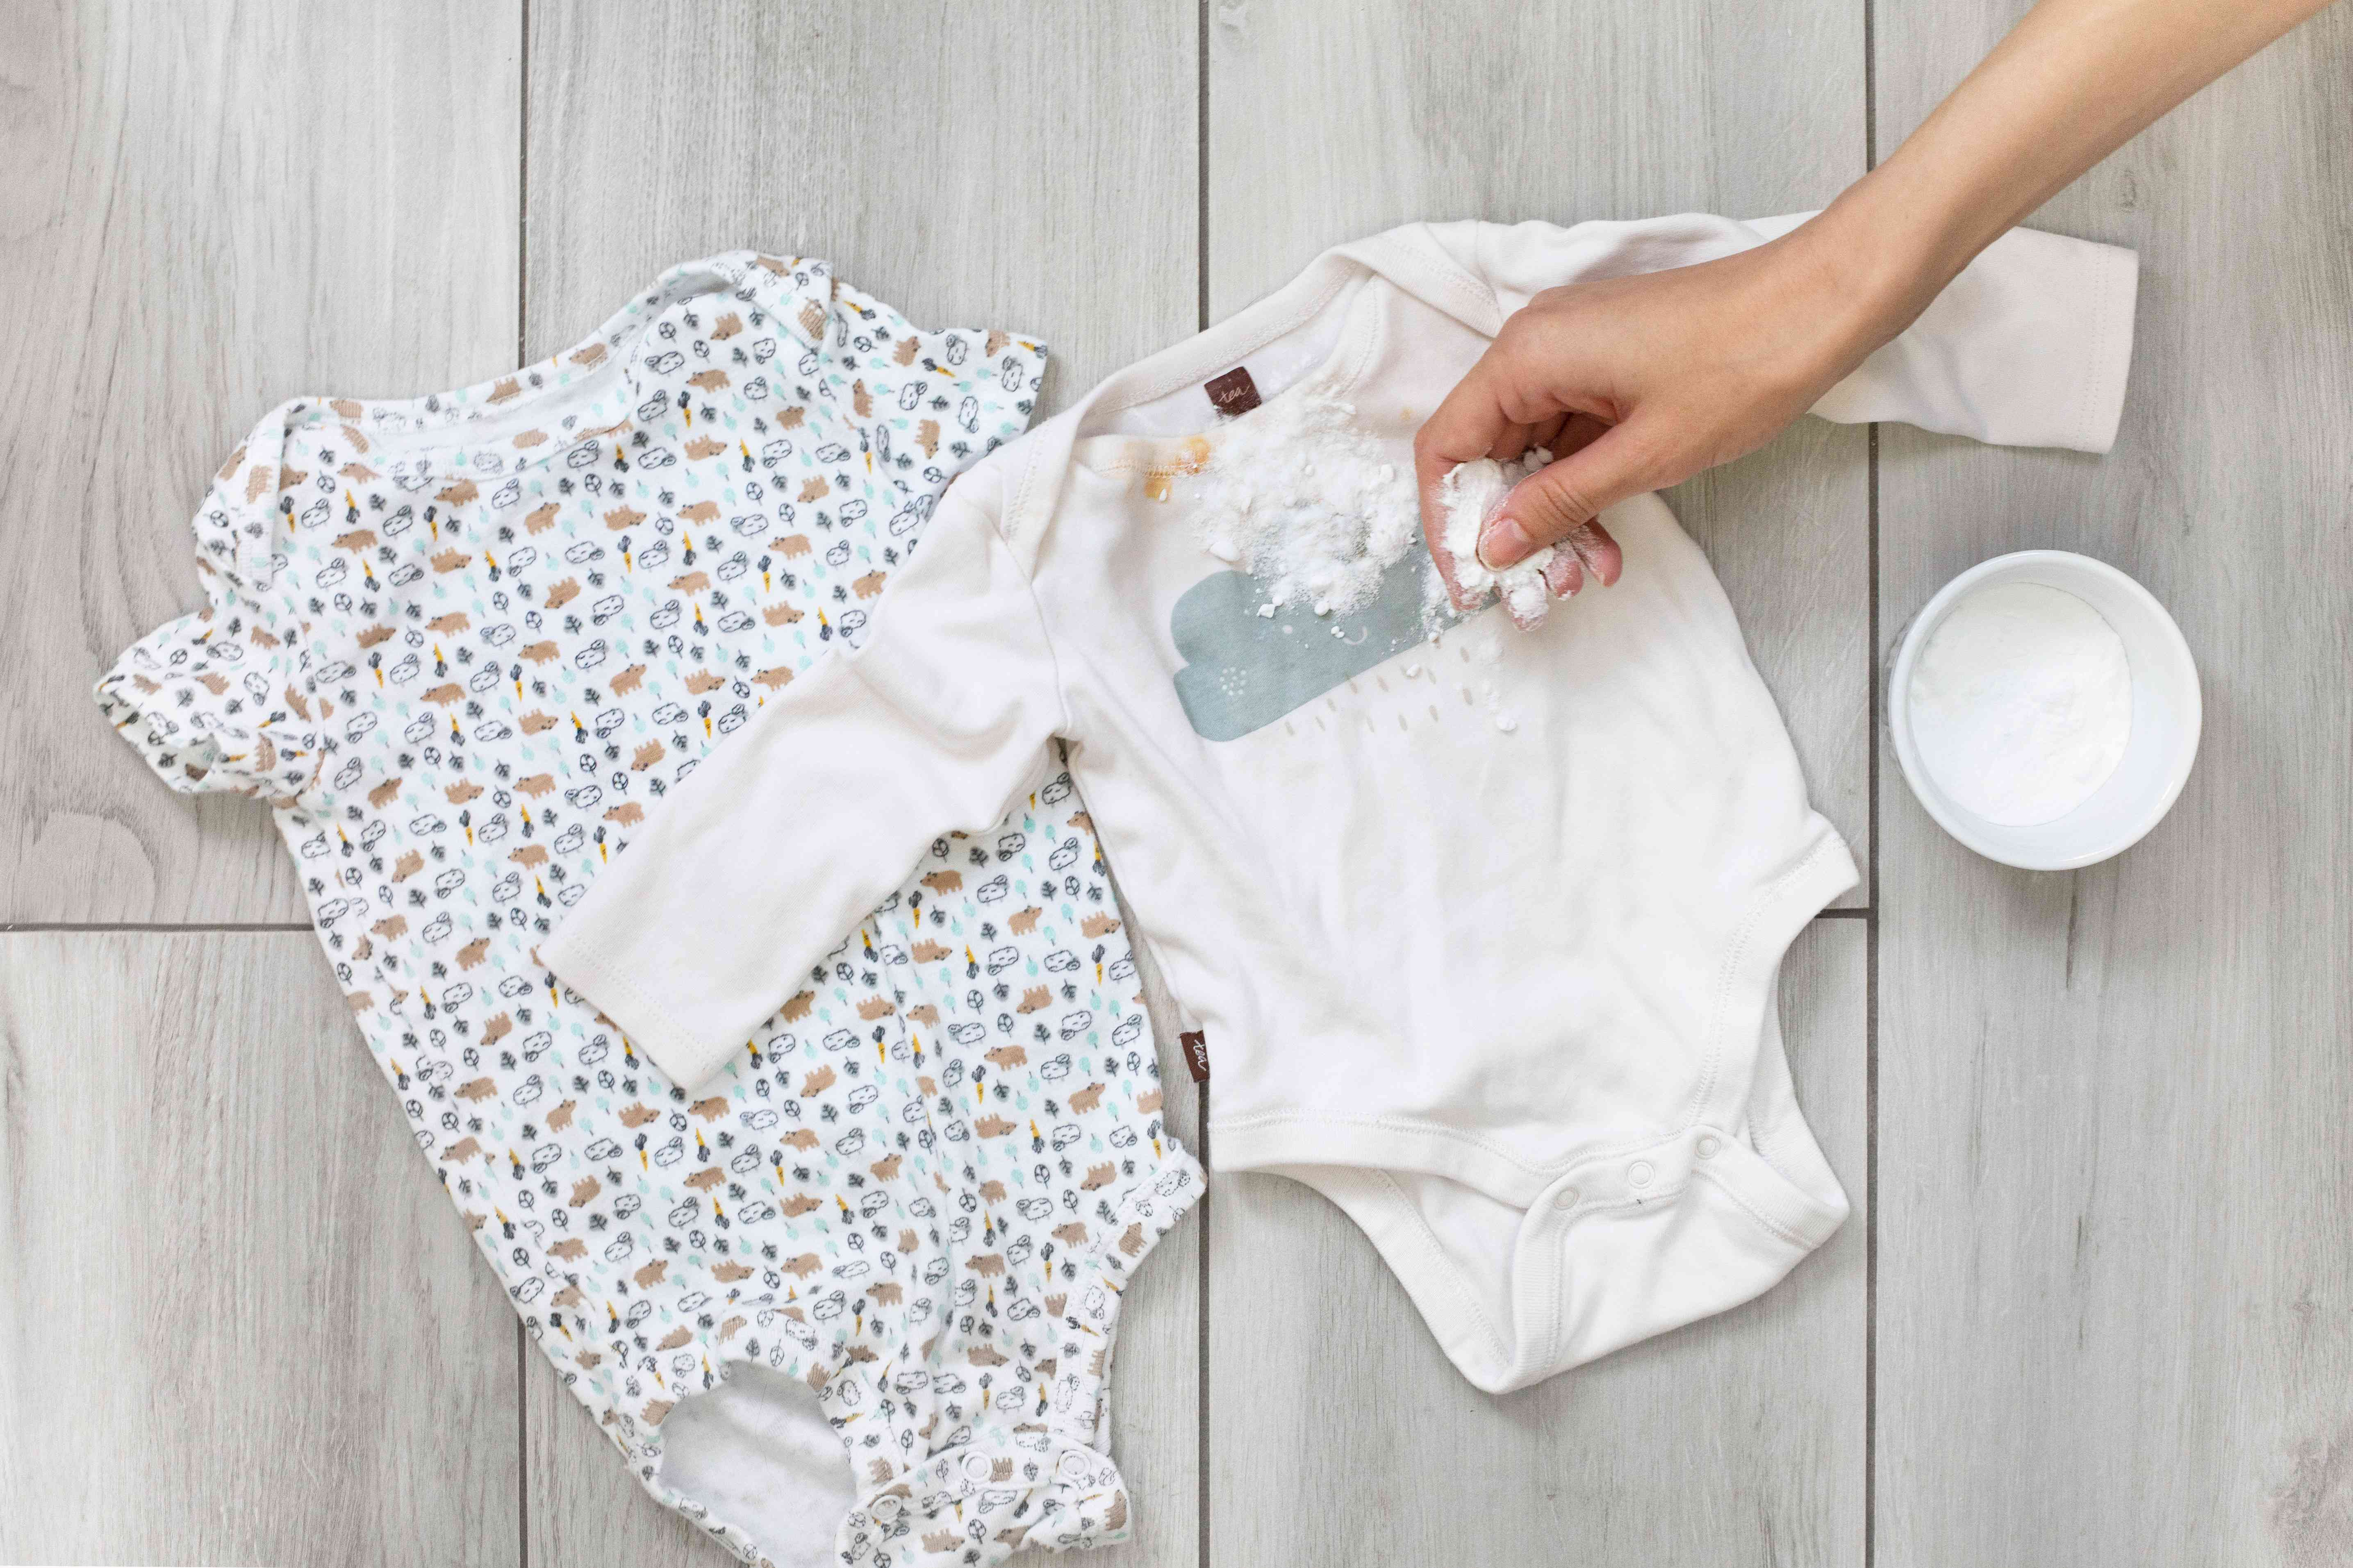 baking soda used to remove vomit stains